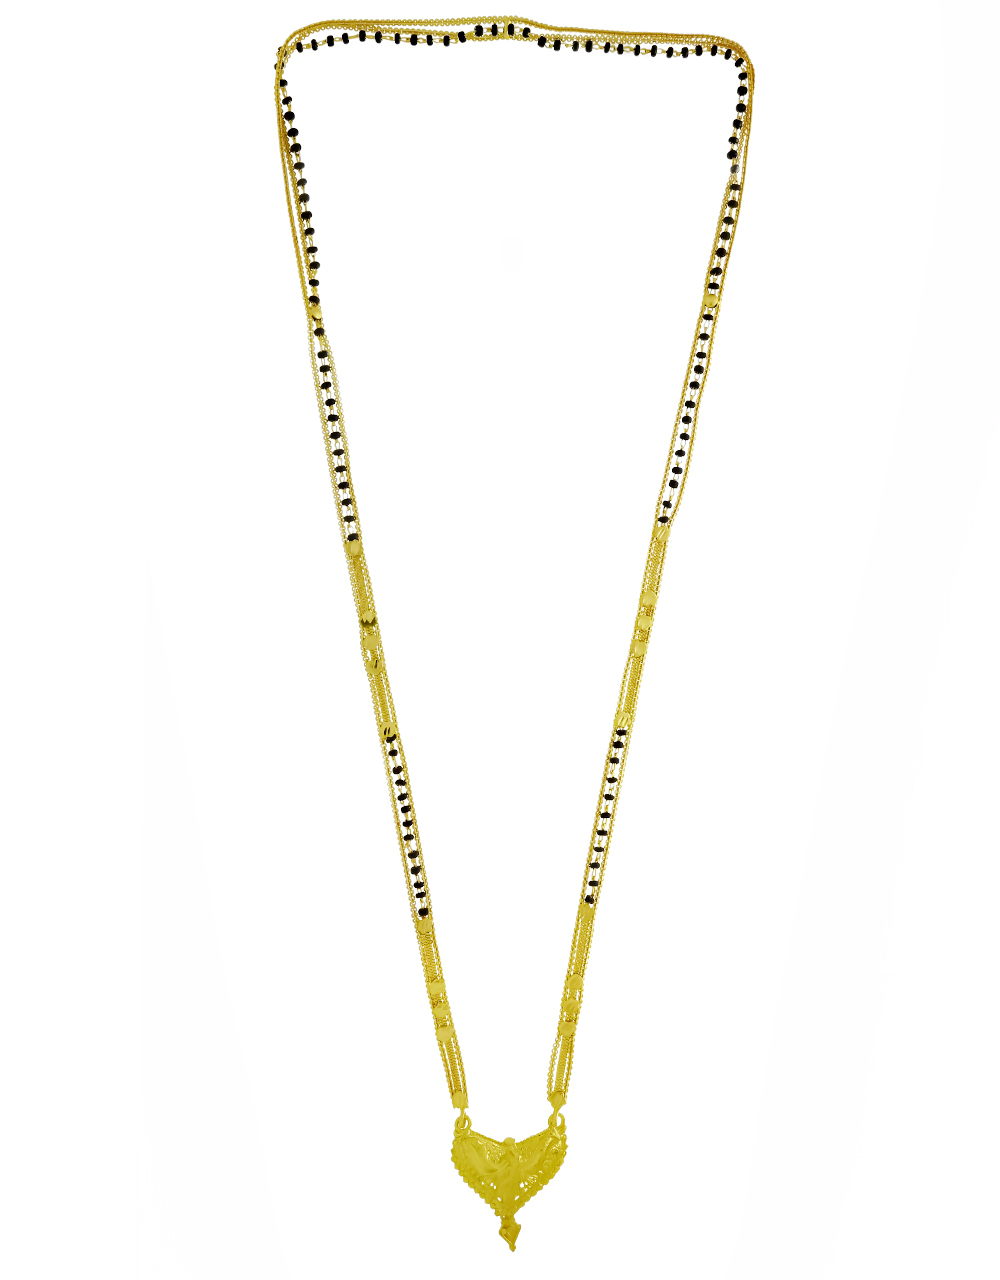 Real Gold Finished Beautiful Long Mangalsutra for Women